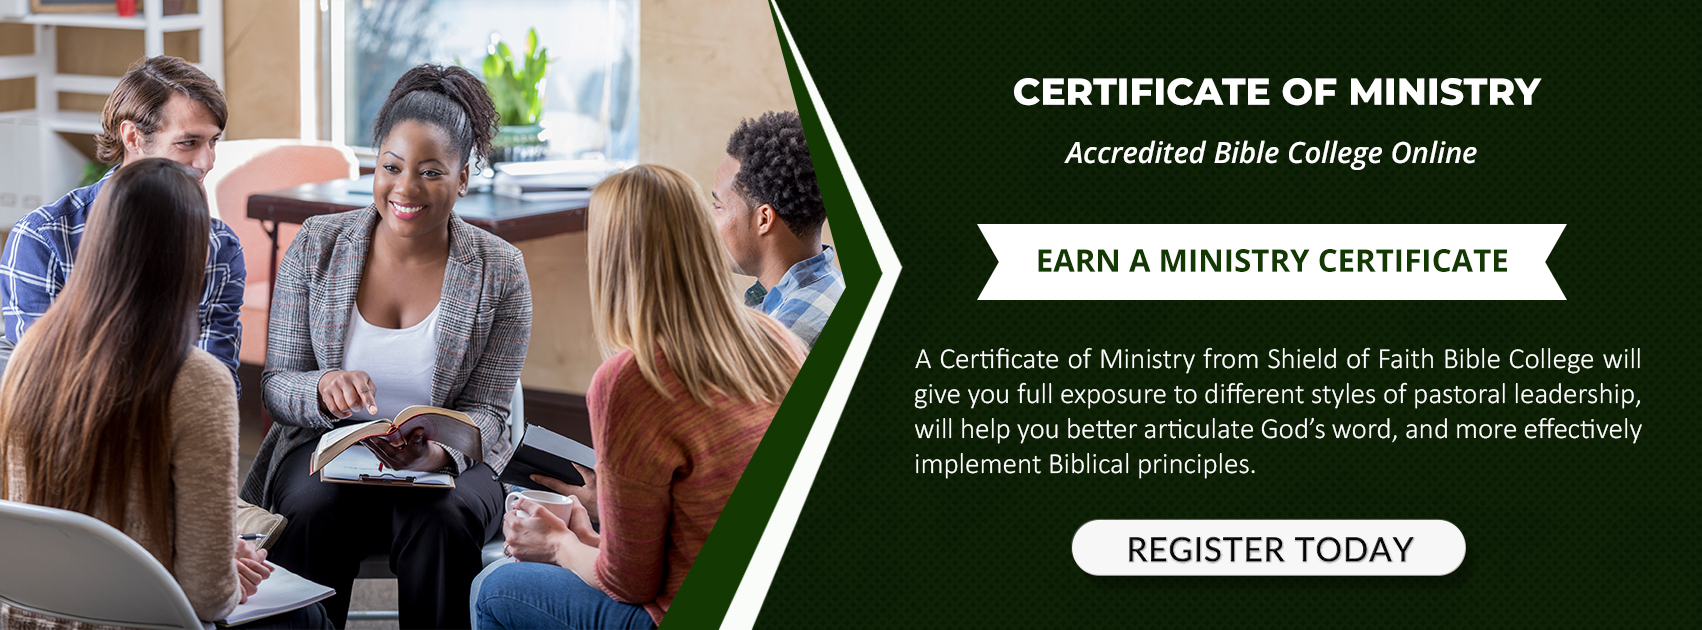 Certificate of Ministry_Bible College Banner Official 1.jpg